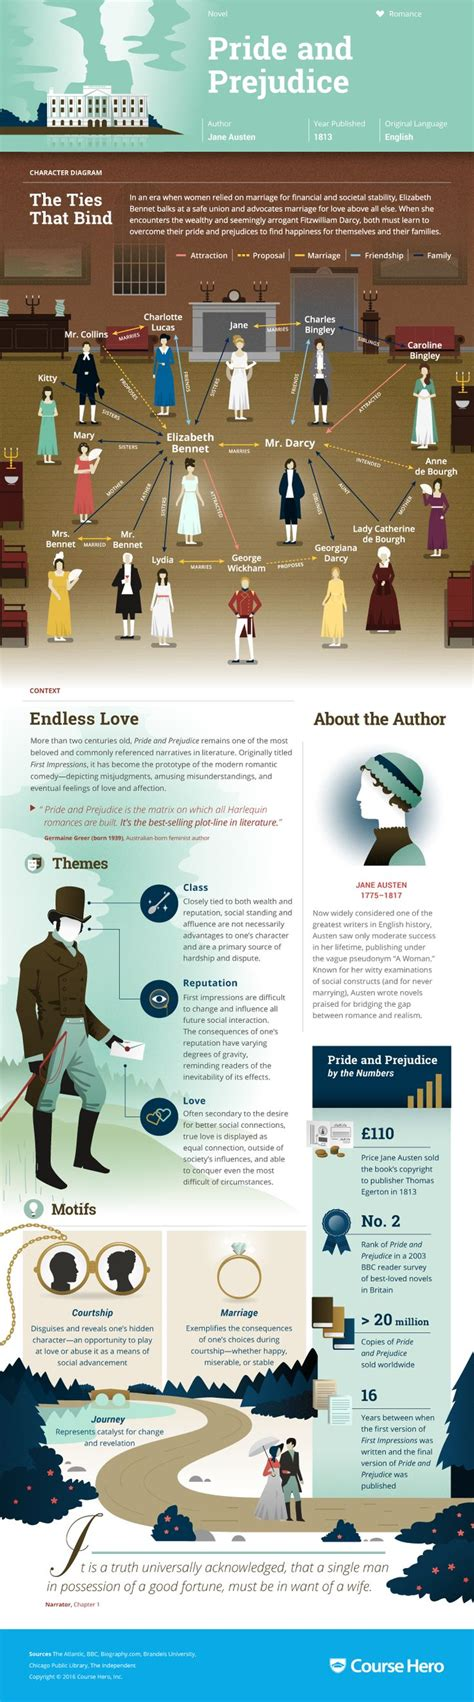 themes in pride and prejudice novel best 25 jane austen novels ideas on pinterest jane